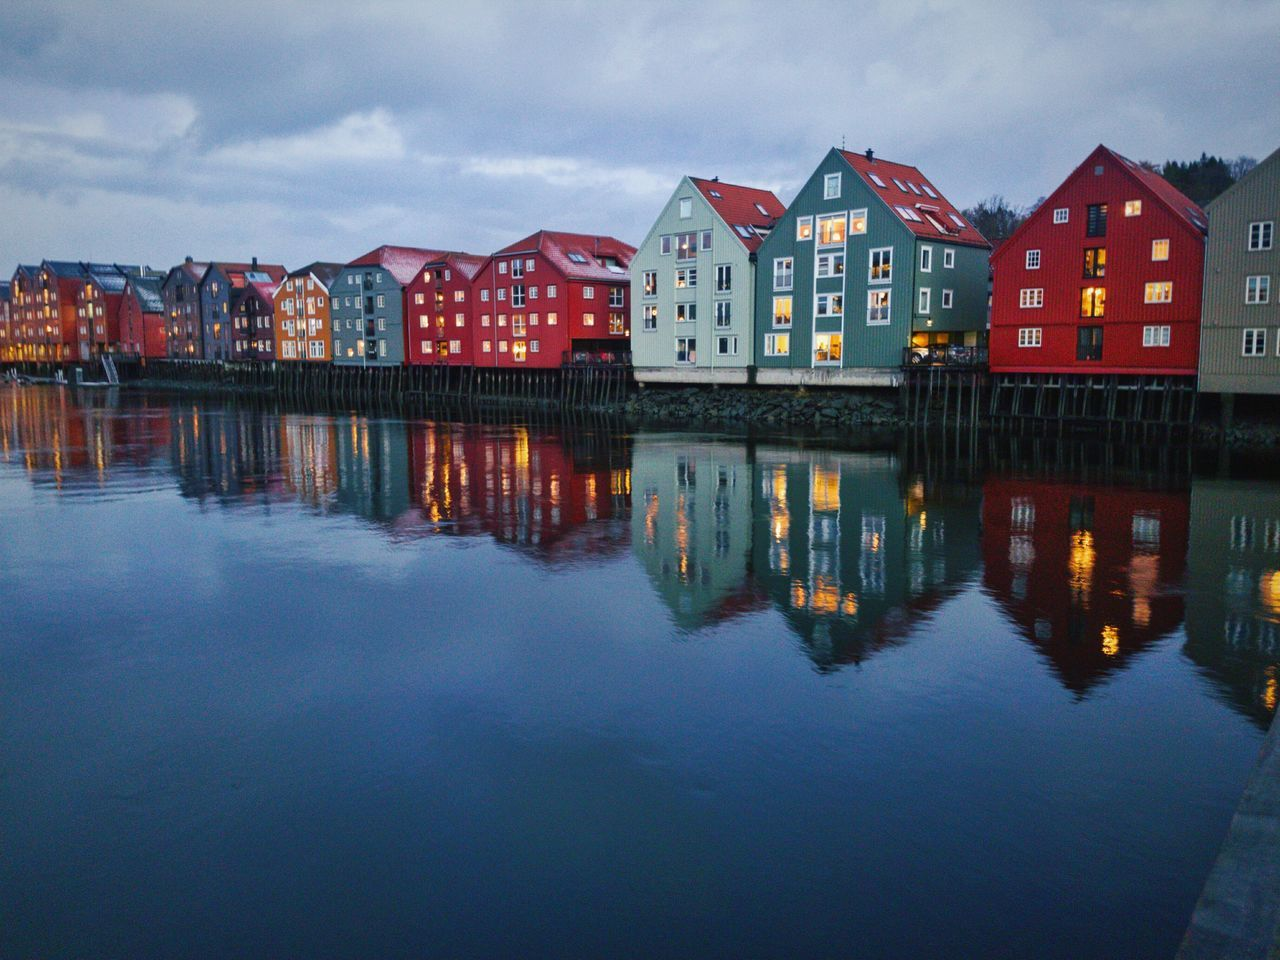 Reflection Water Architecture Outdoors Norway Norway🇳🇴 Norwegian Winter NorwayTourism Architecture Trondheim Trøndelag No People Oslo, Norway Wintertime Bryggen Bakklandet Building Exterior Built Structure Loneliness Nidaros Norwegian Landscape Reflection Simetry Trondelag Cold Temperature The City Light The Architect - 2017 EyeEm Awards Neighborhood Map The Street Photographer - 2017 EyeEm Awards